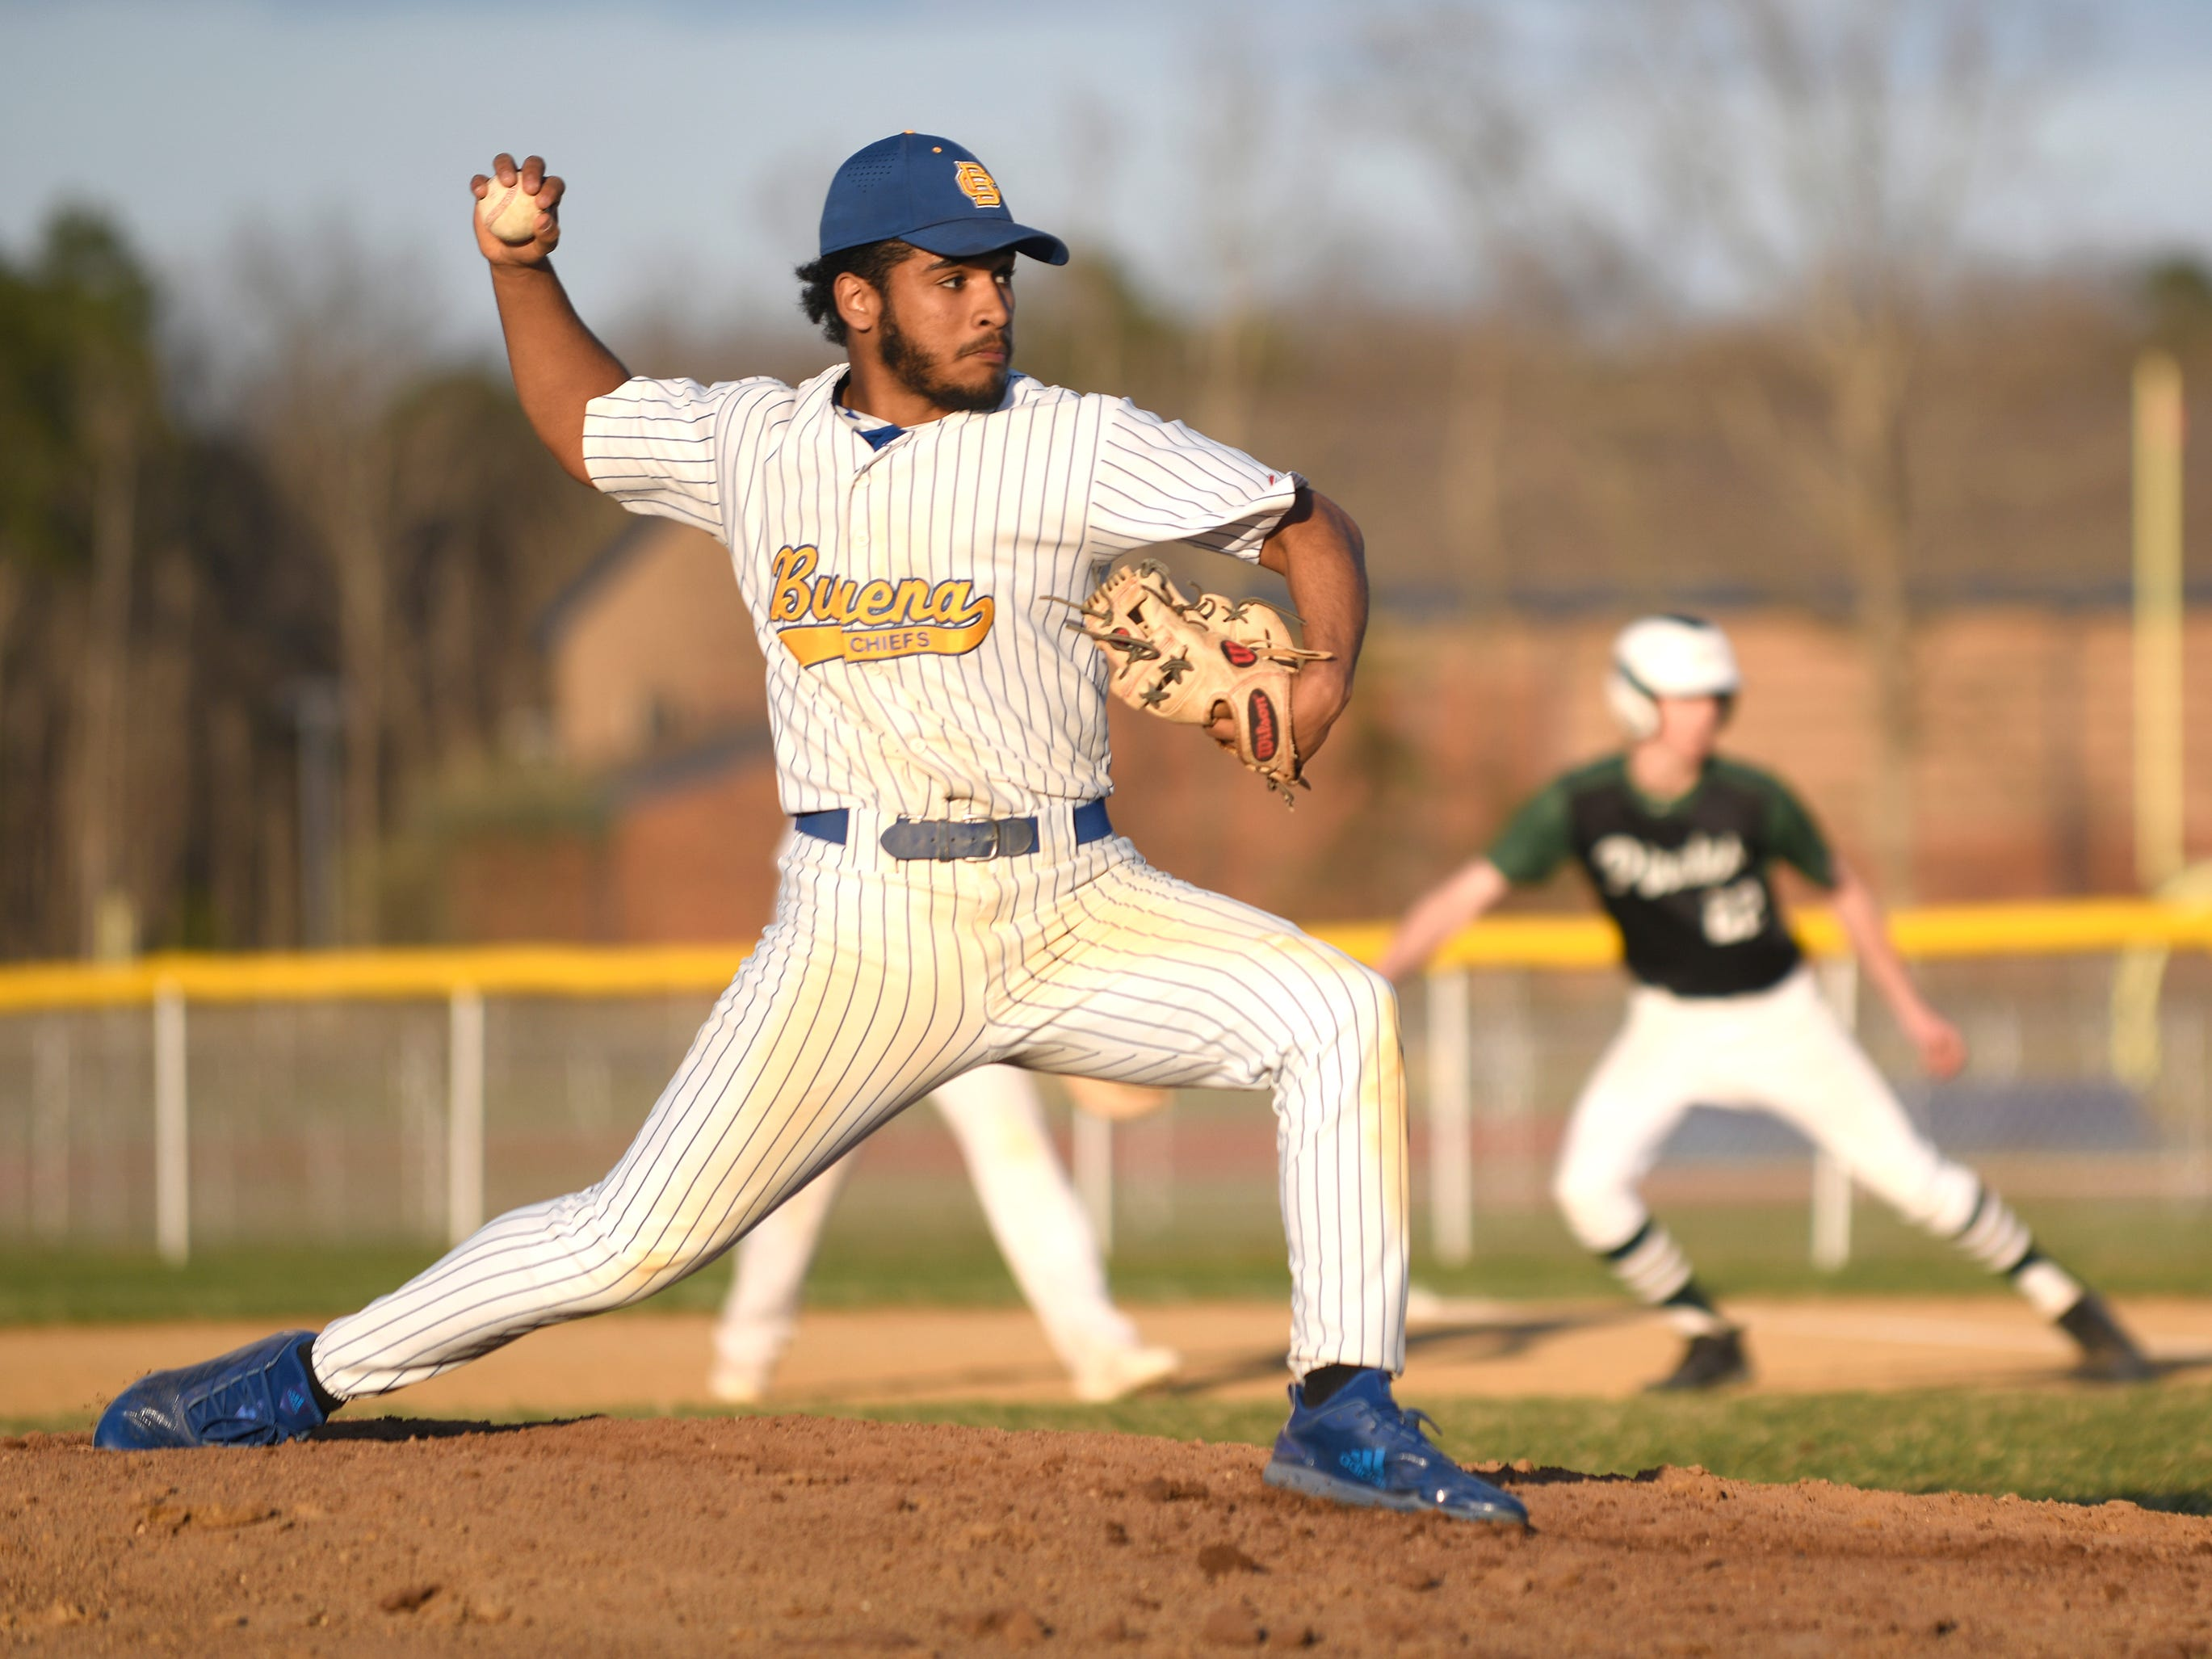 The Buena High School baseball team defeated visiting Cedar Creek 6-5 on Wednesday, April 10, 2019.